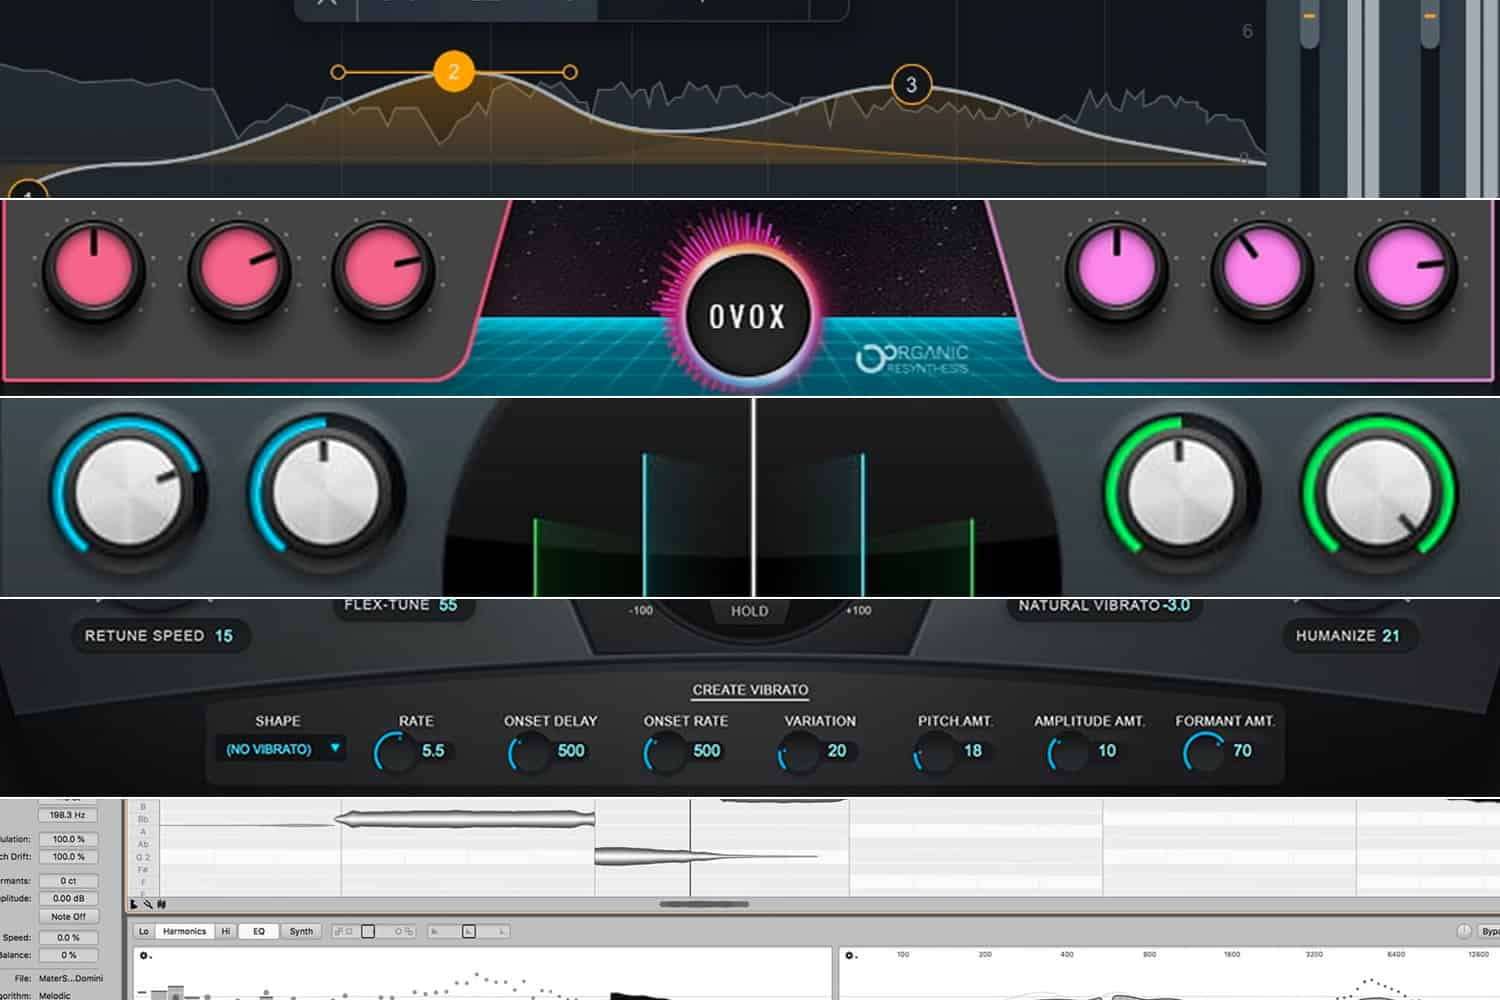 The best autotune plugins for vocals in 2020